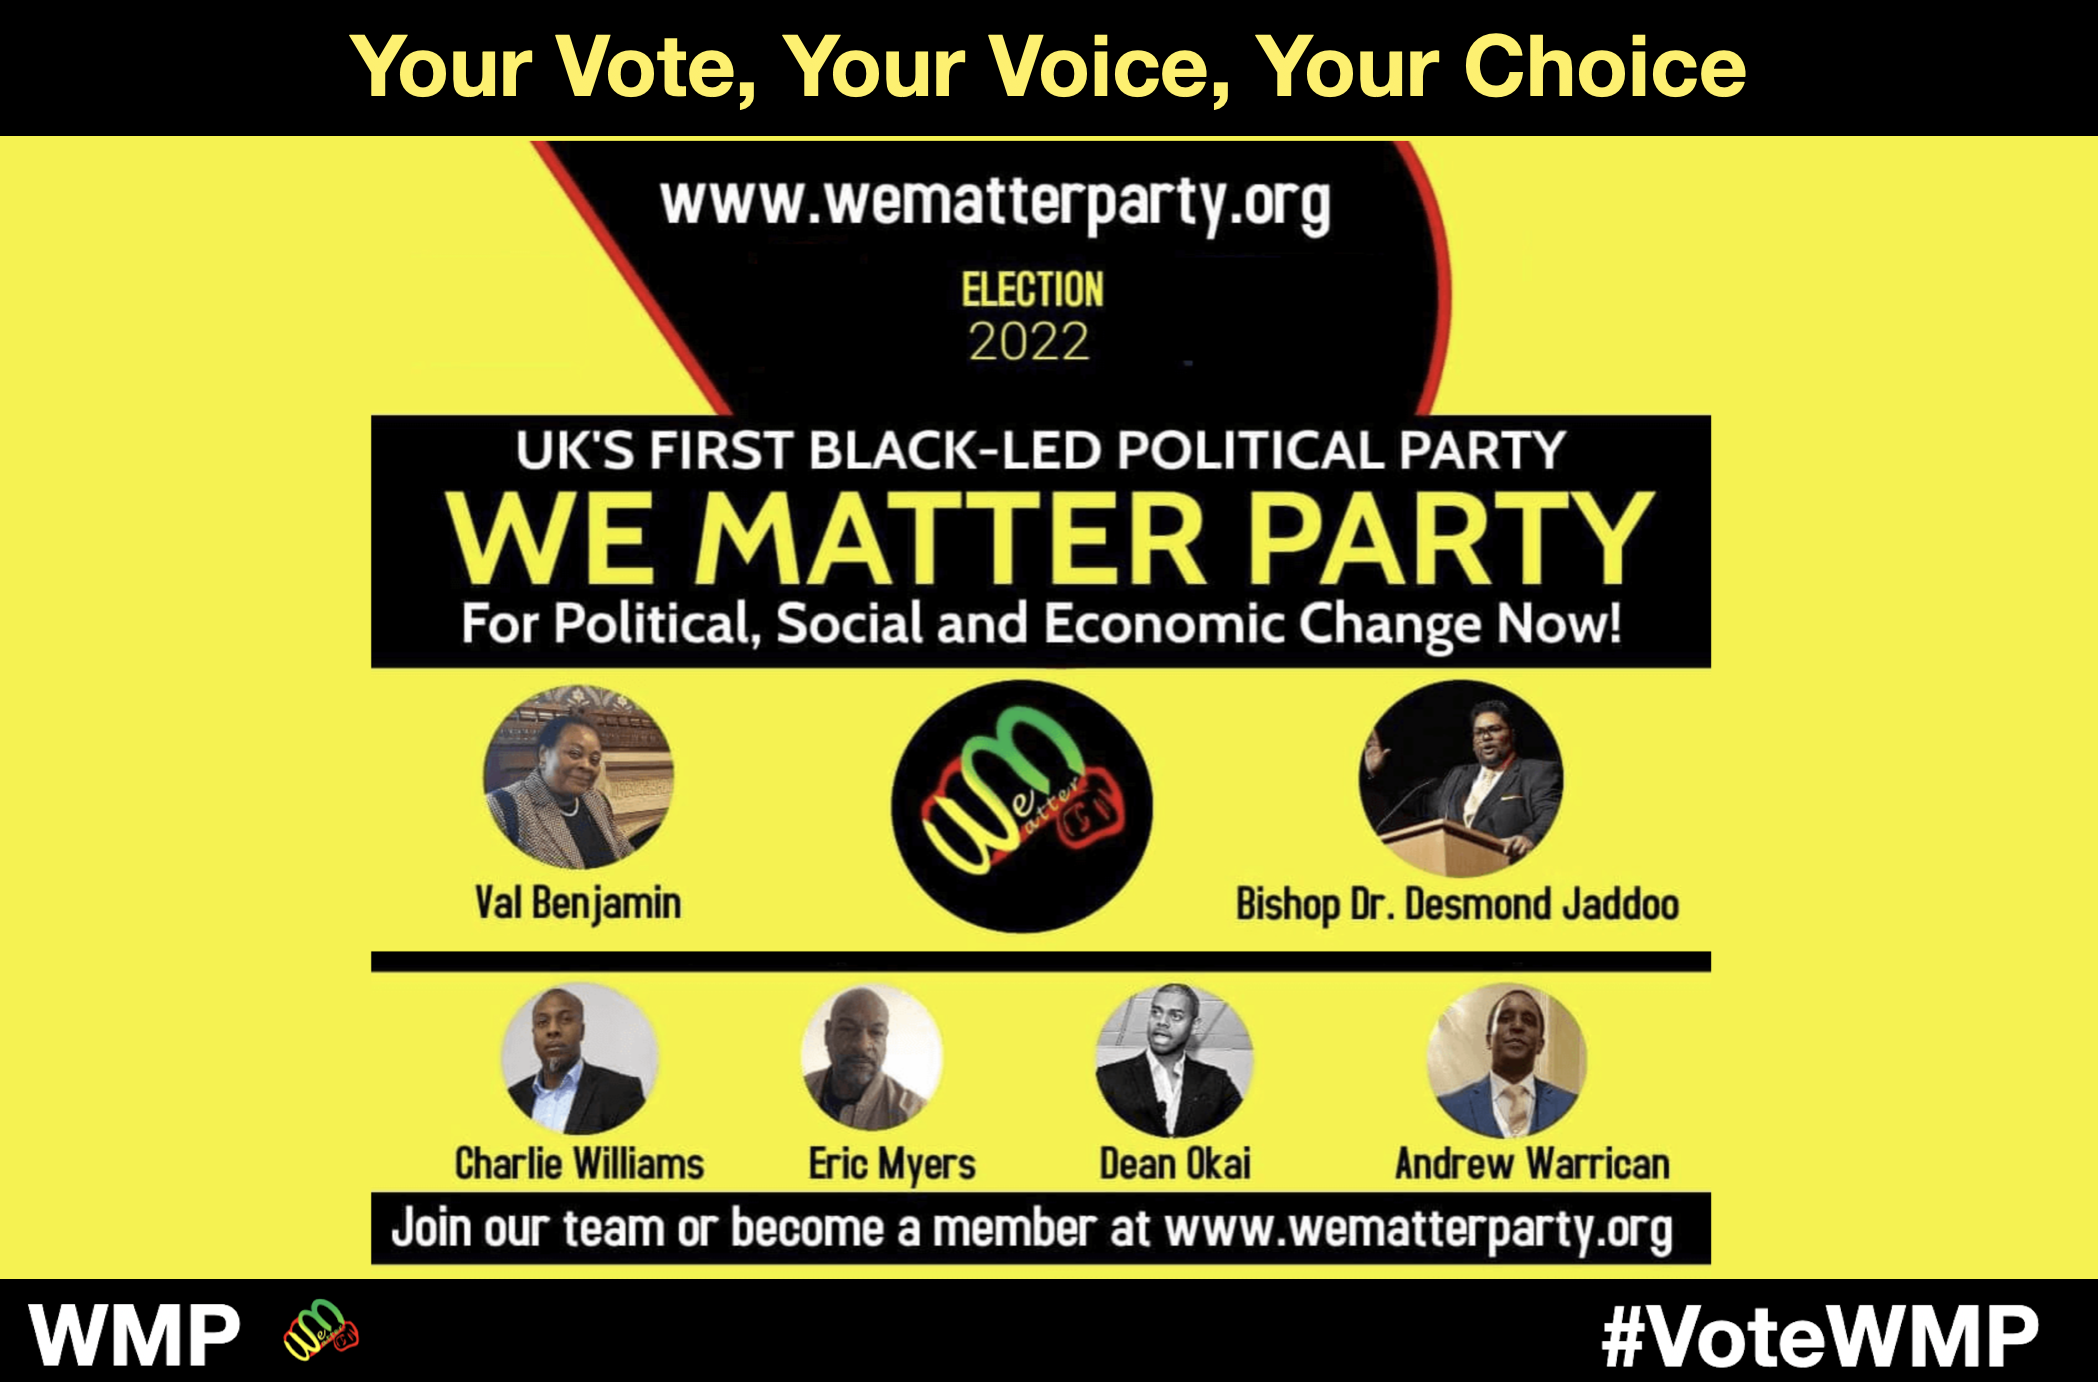 We Matter Party